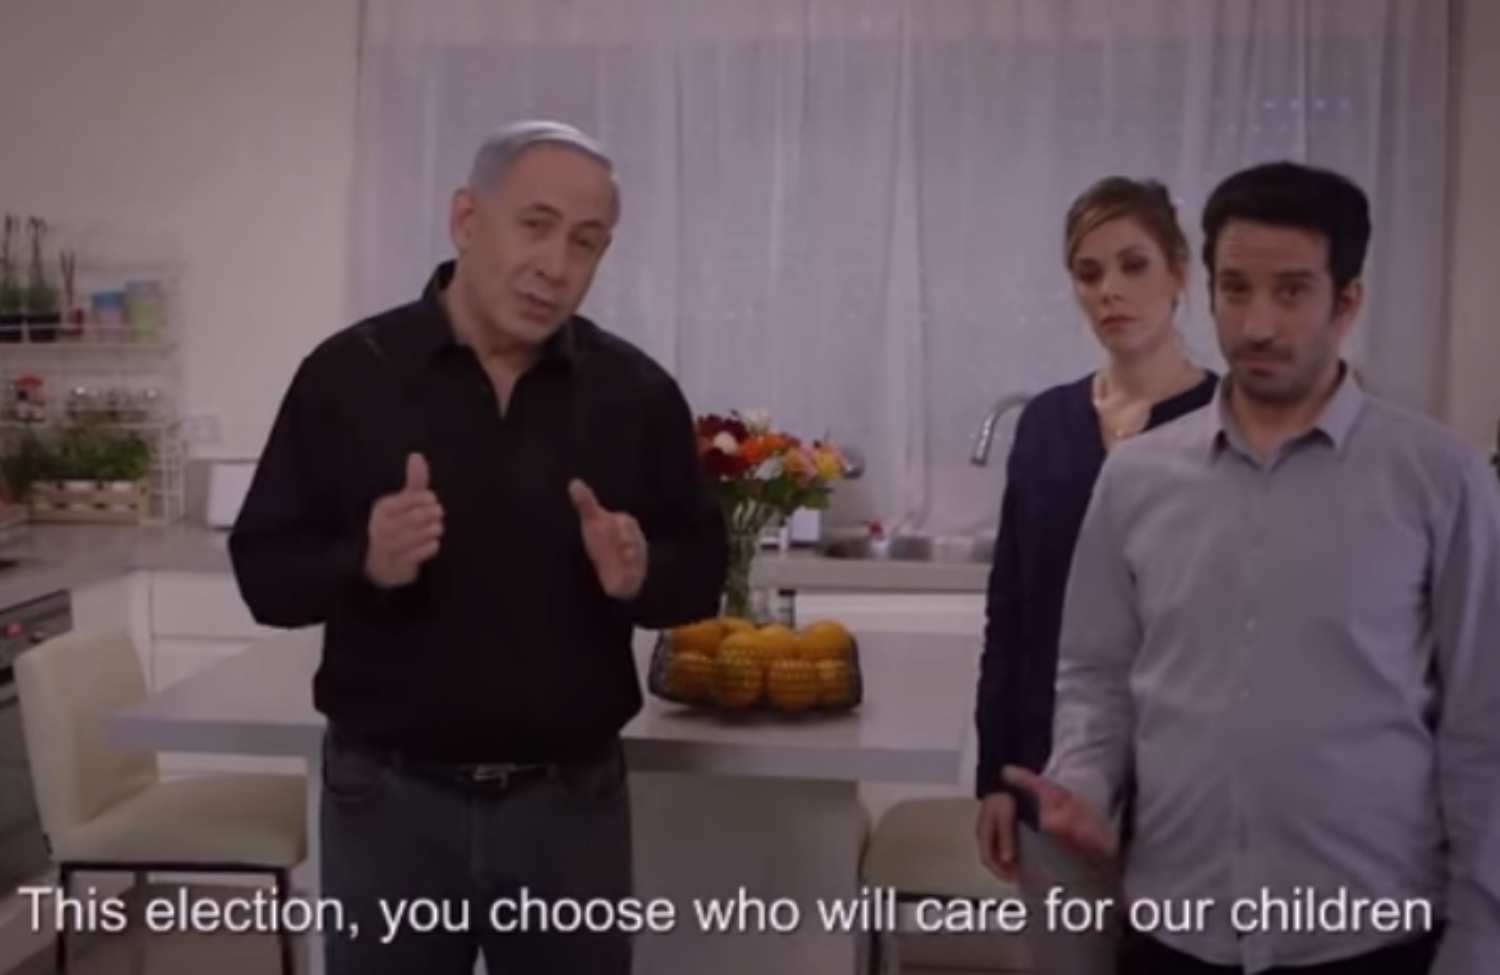 Benjamin-Netanyahus-babysitter-ad-released-January-31-2015